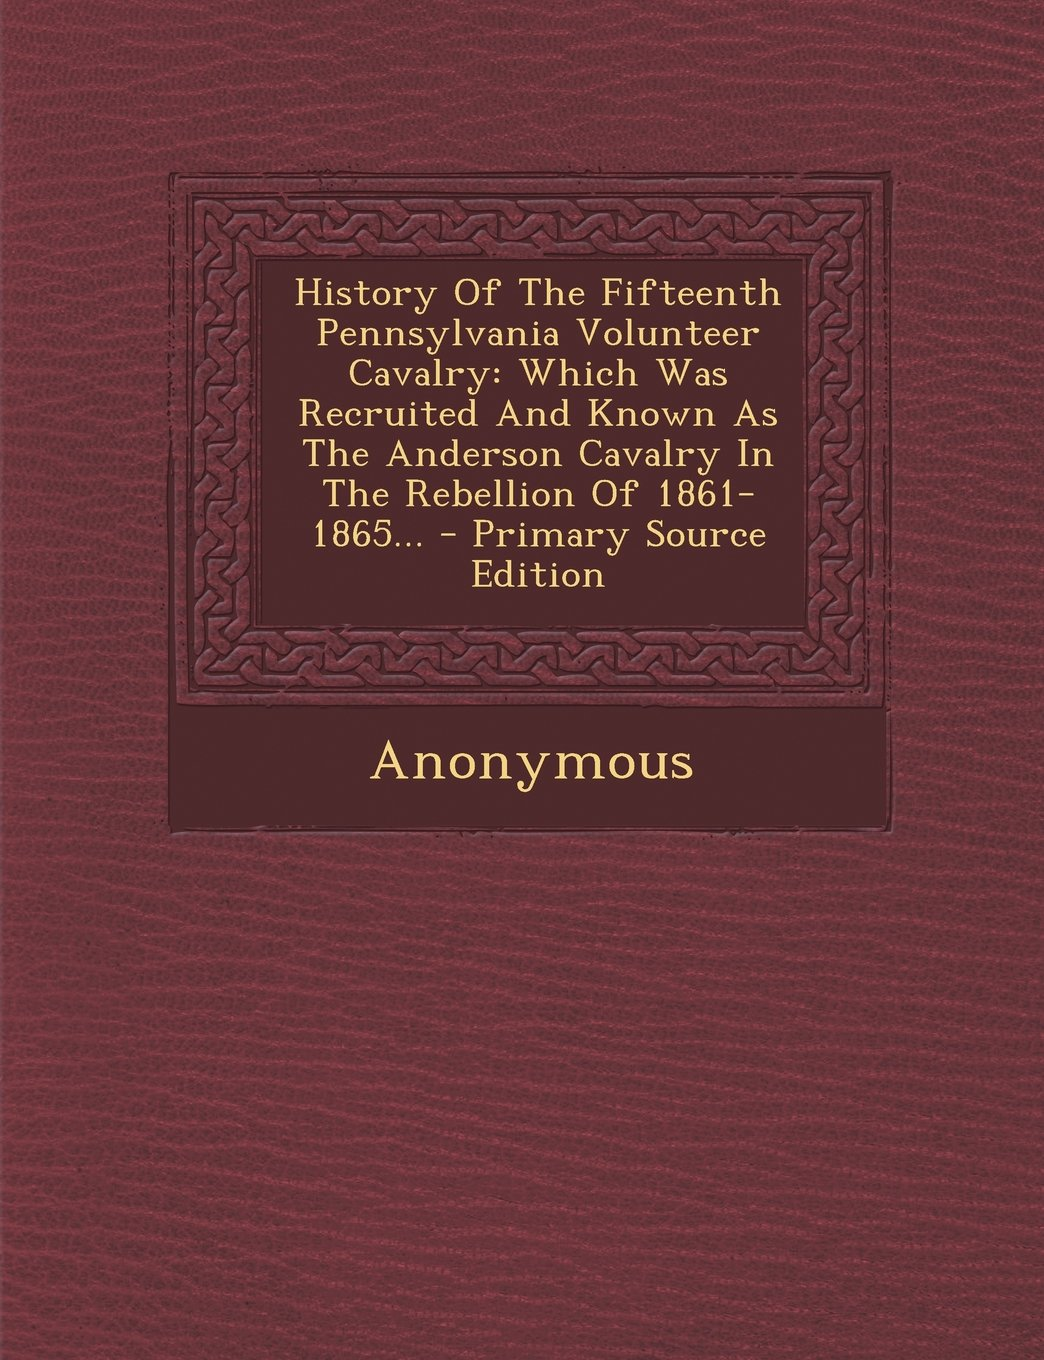 Download History Of The Fifteenth Pennsylvania Volunteer Cavalry: Which Was Recruited And Known As The Anderson Cavalry In The Rebellion Of 1861-1865... - Primary Source Edition PDF